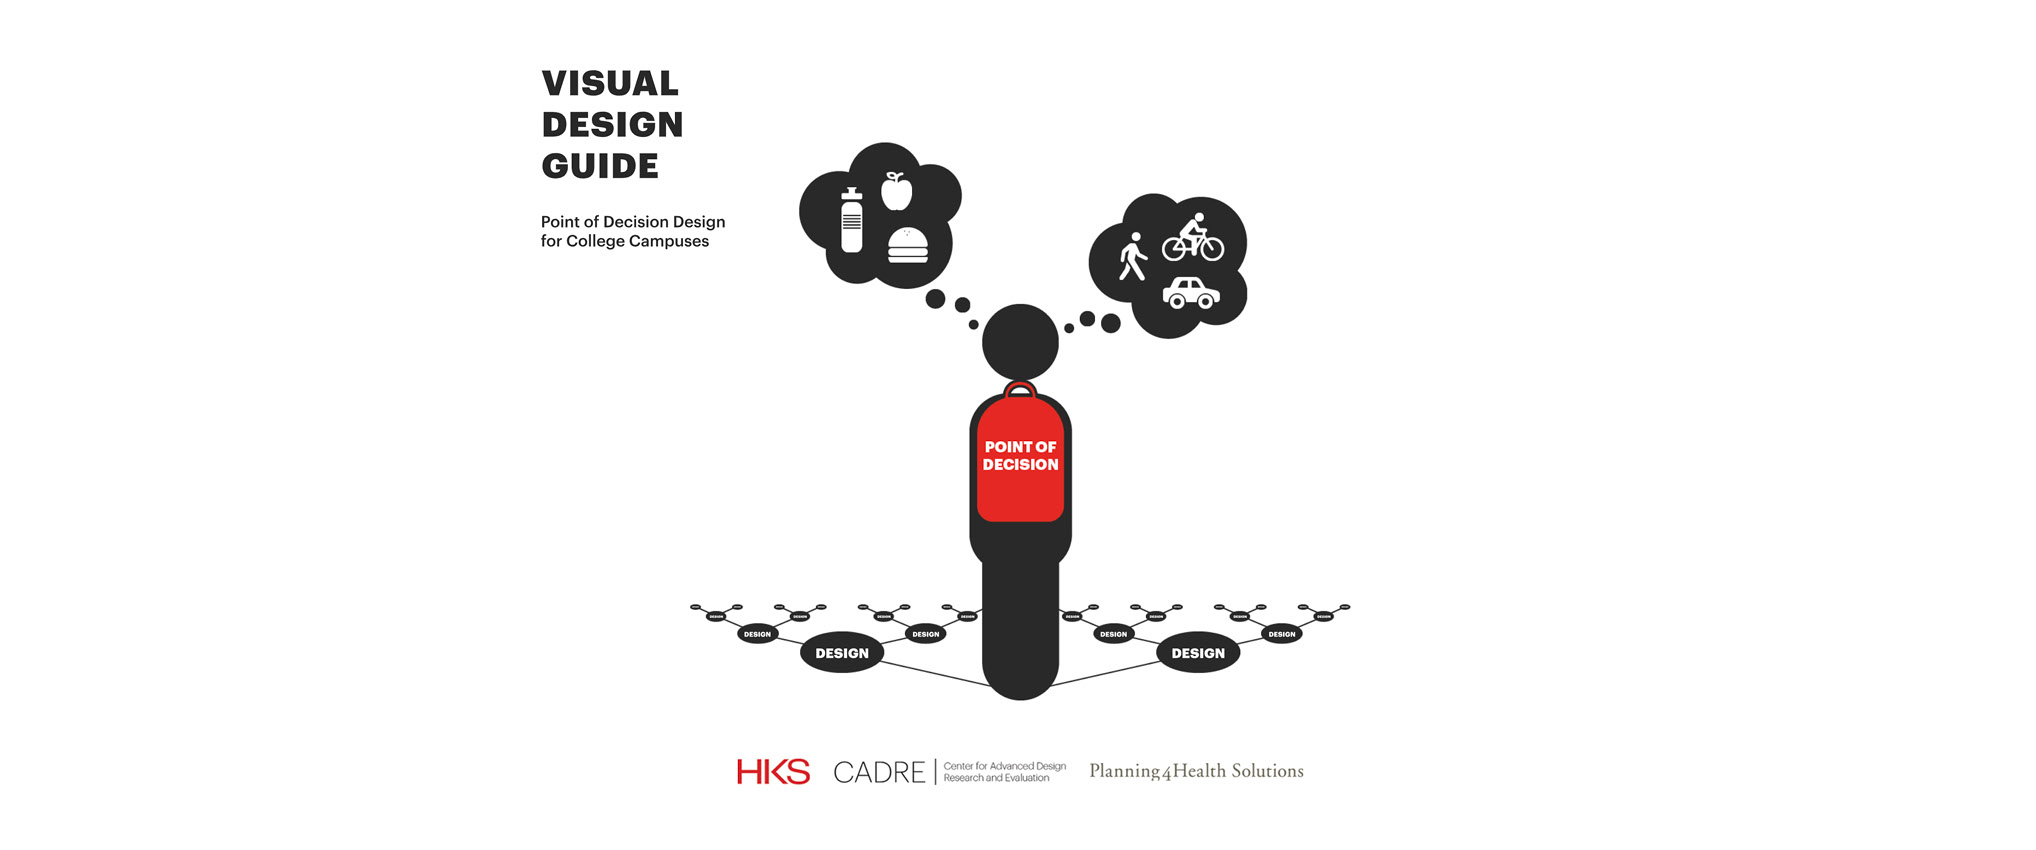 Point of Decision Design for College Campuses Visual Design Guide